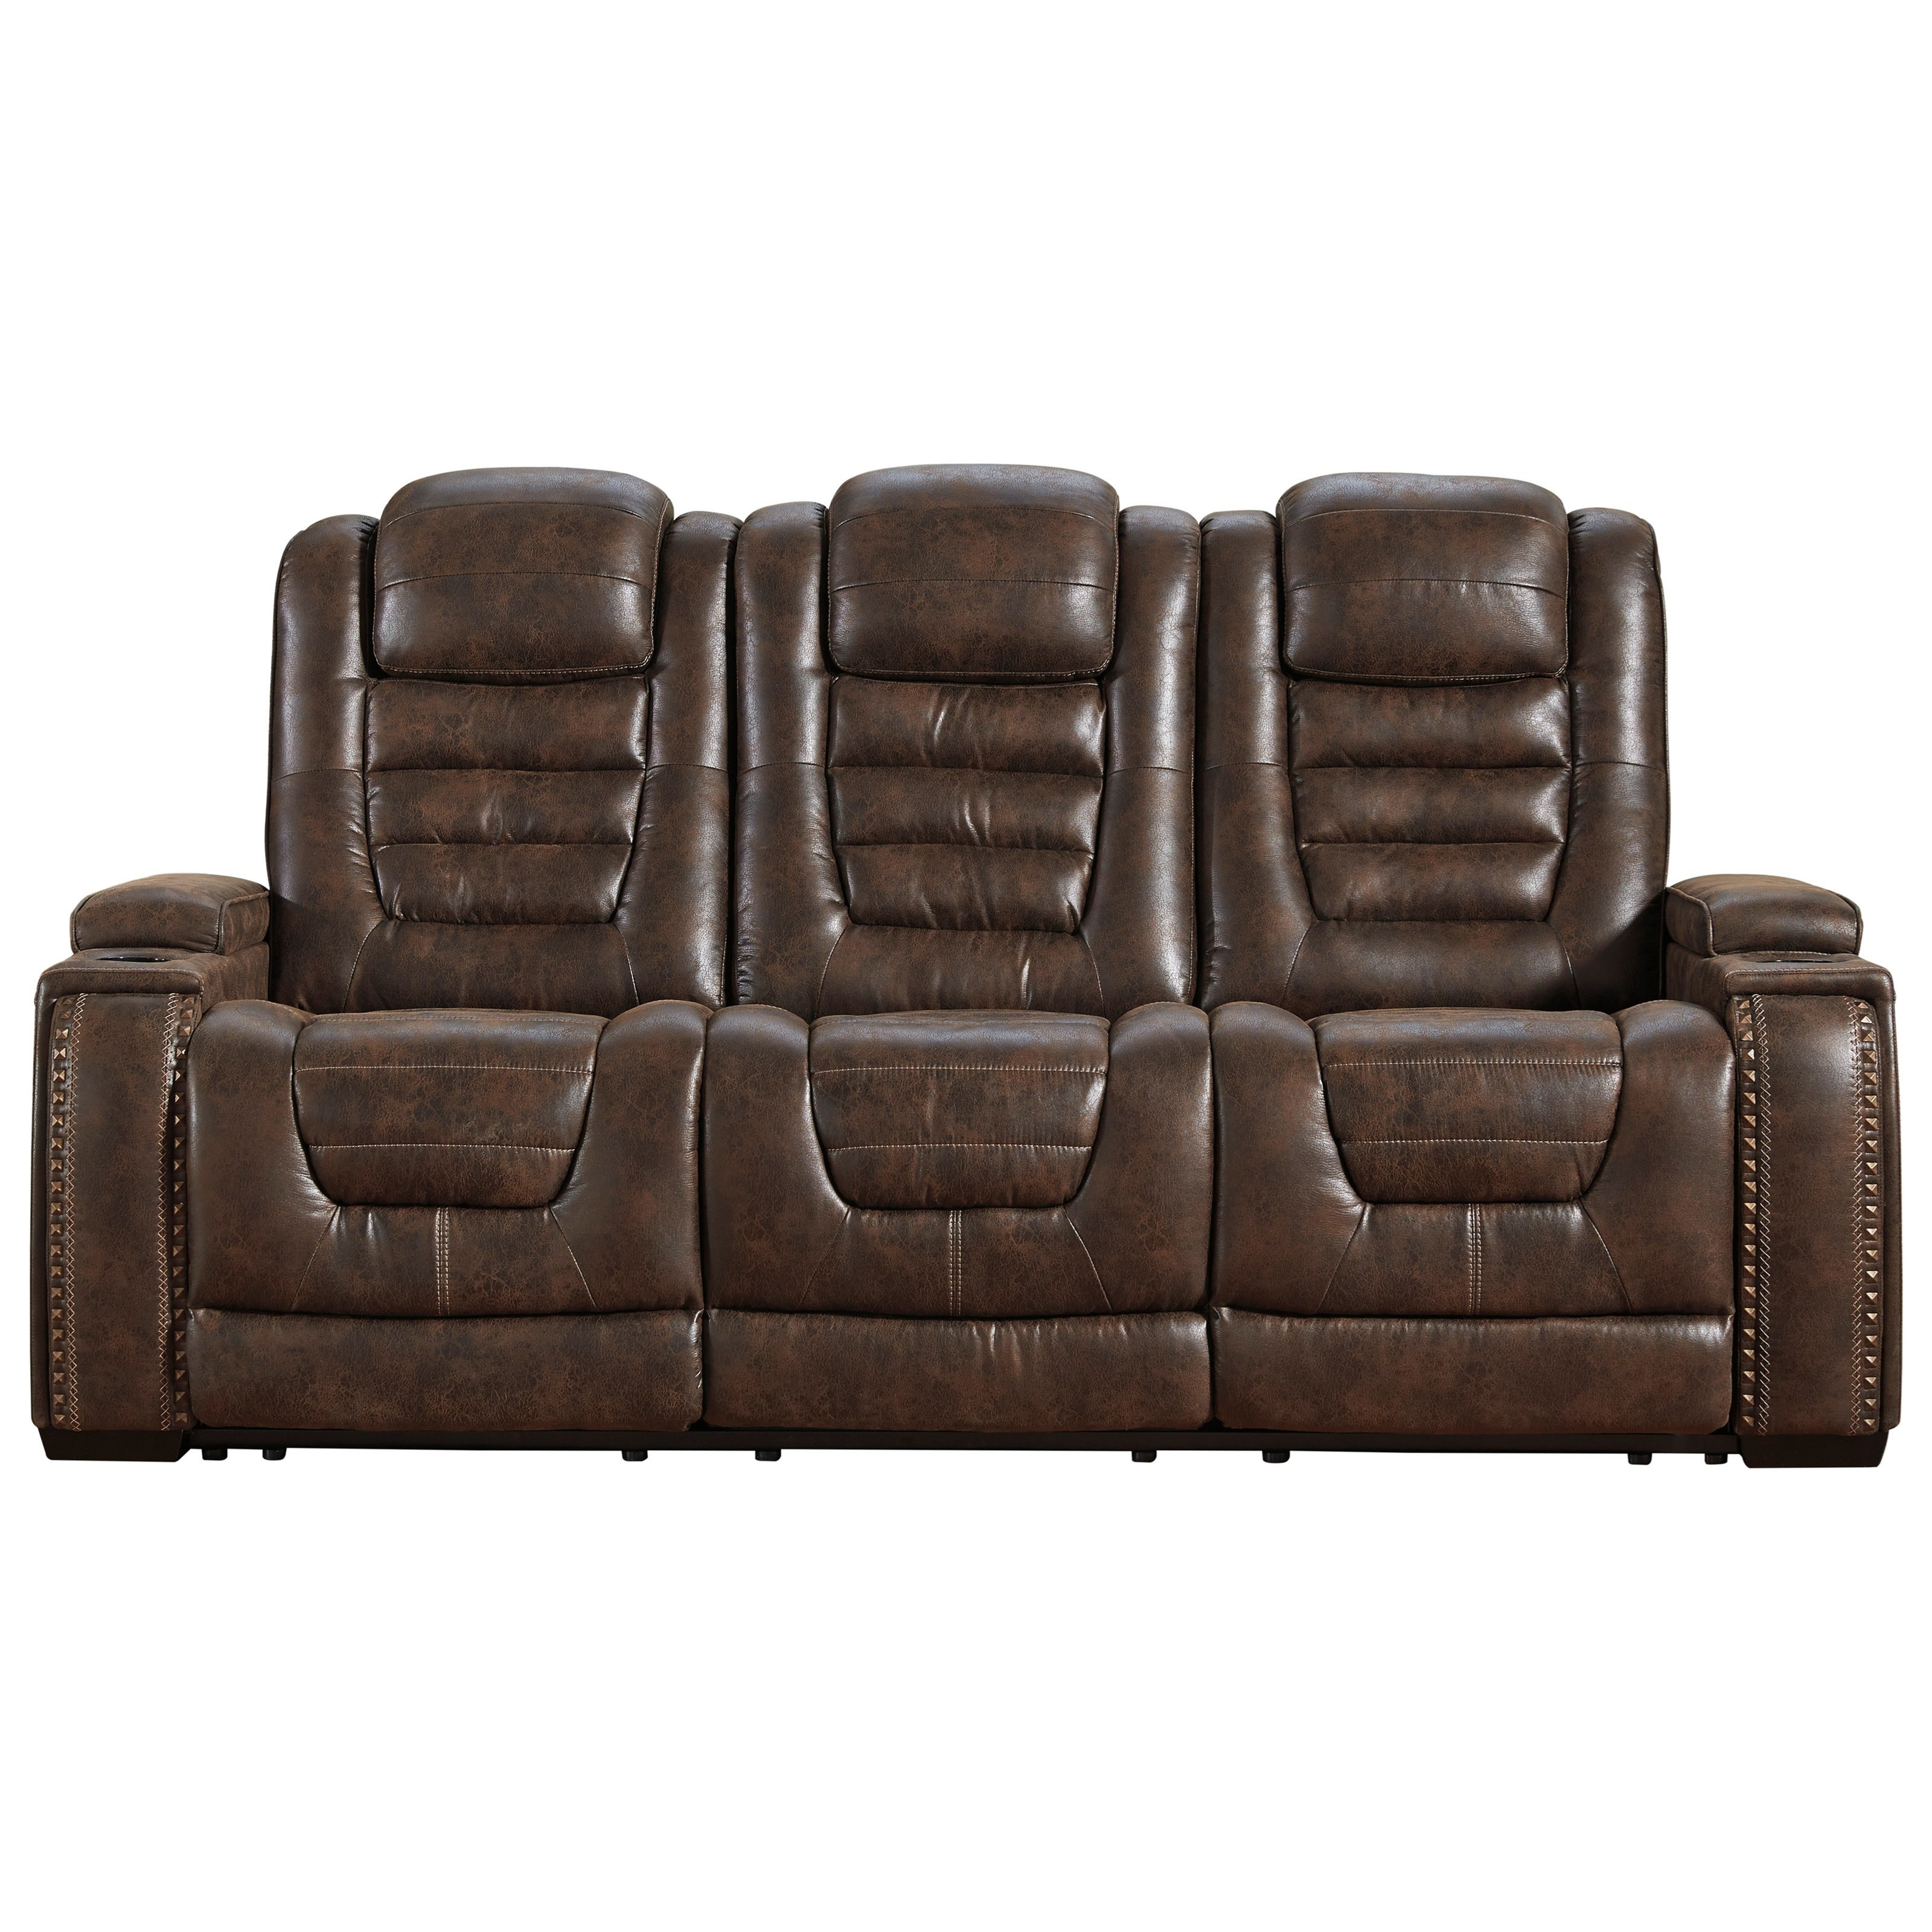 Game Zone Power Reclining Sofa w/ Adjustable Headrests by Ashley (Signature Design) at Johnny Janosik